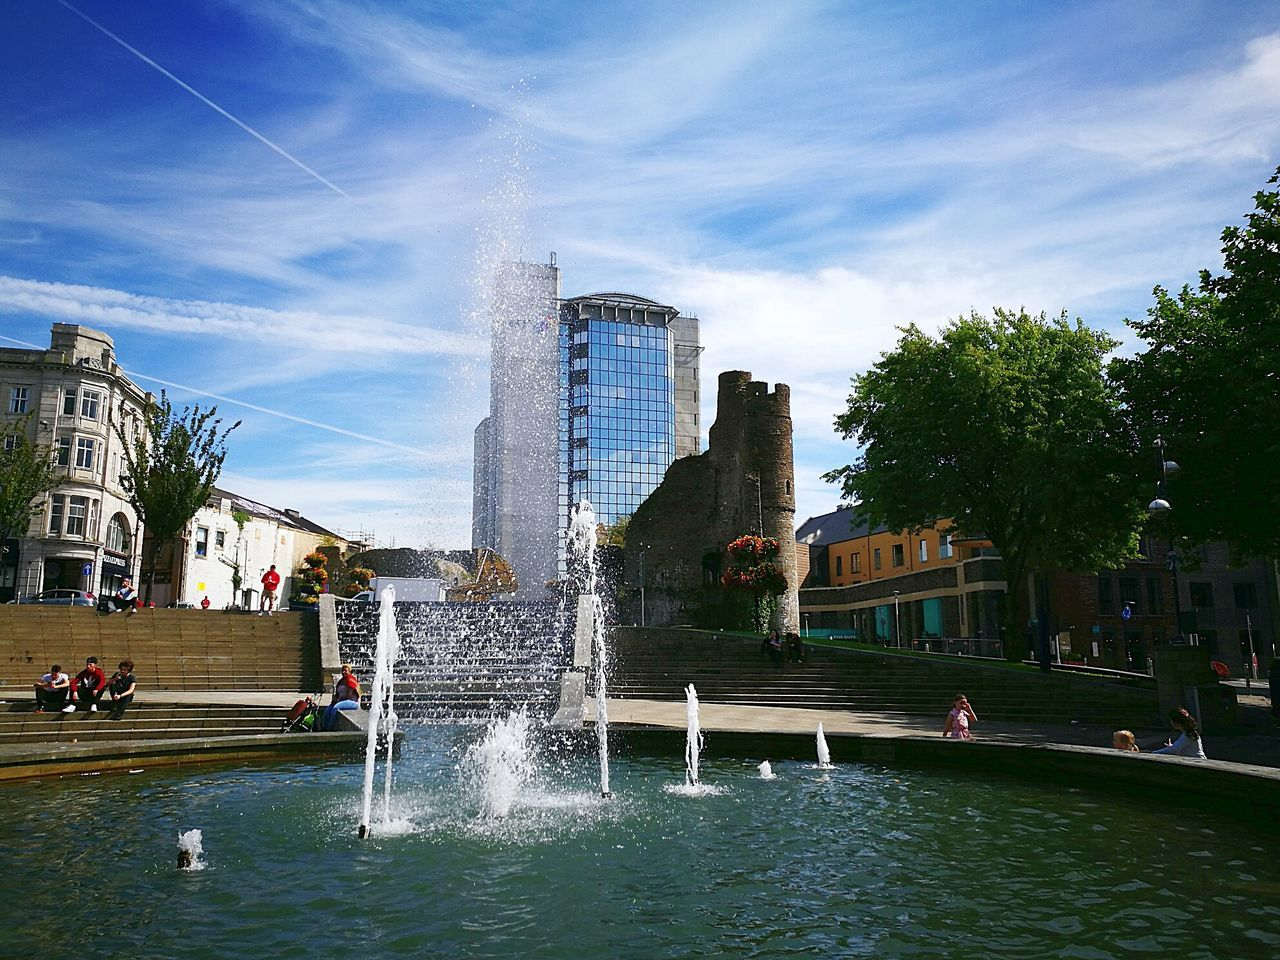 architecture, built structure, fountain, water, building exterior, splashing, sky, large group of people, waterfront, city, motion, spraying, real people, travel destinations, day, vacations, cloud - sky, outdoors, skyscraper, lifestyles, modern, nature, tree, people